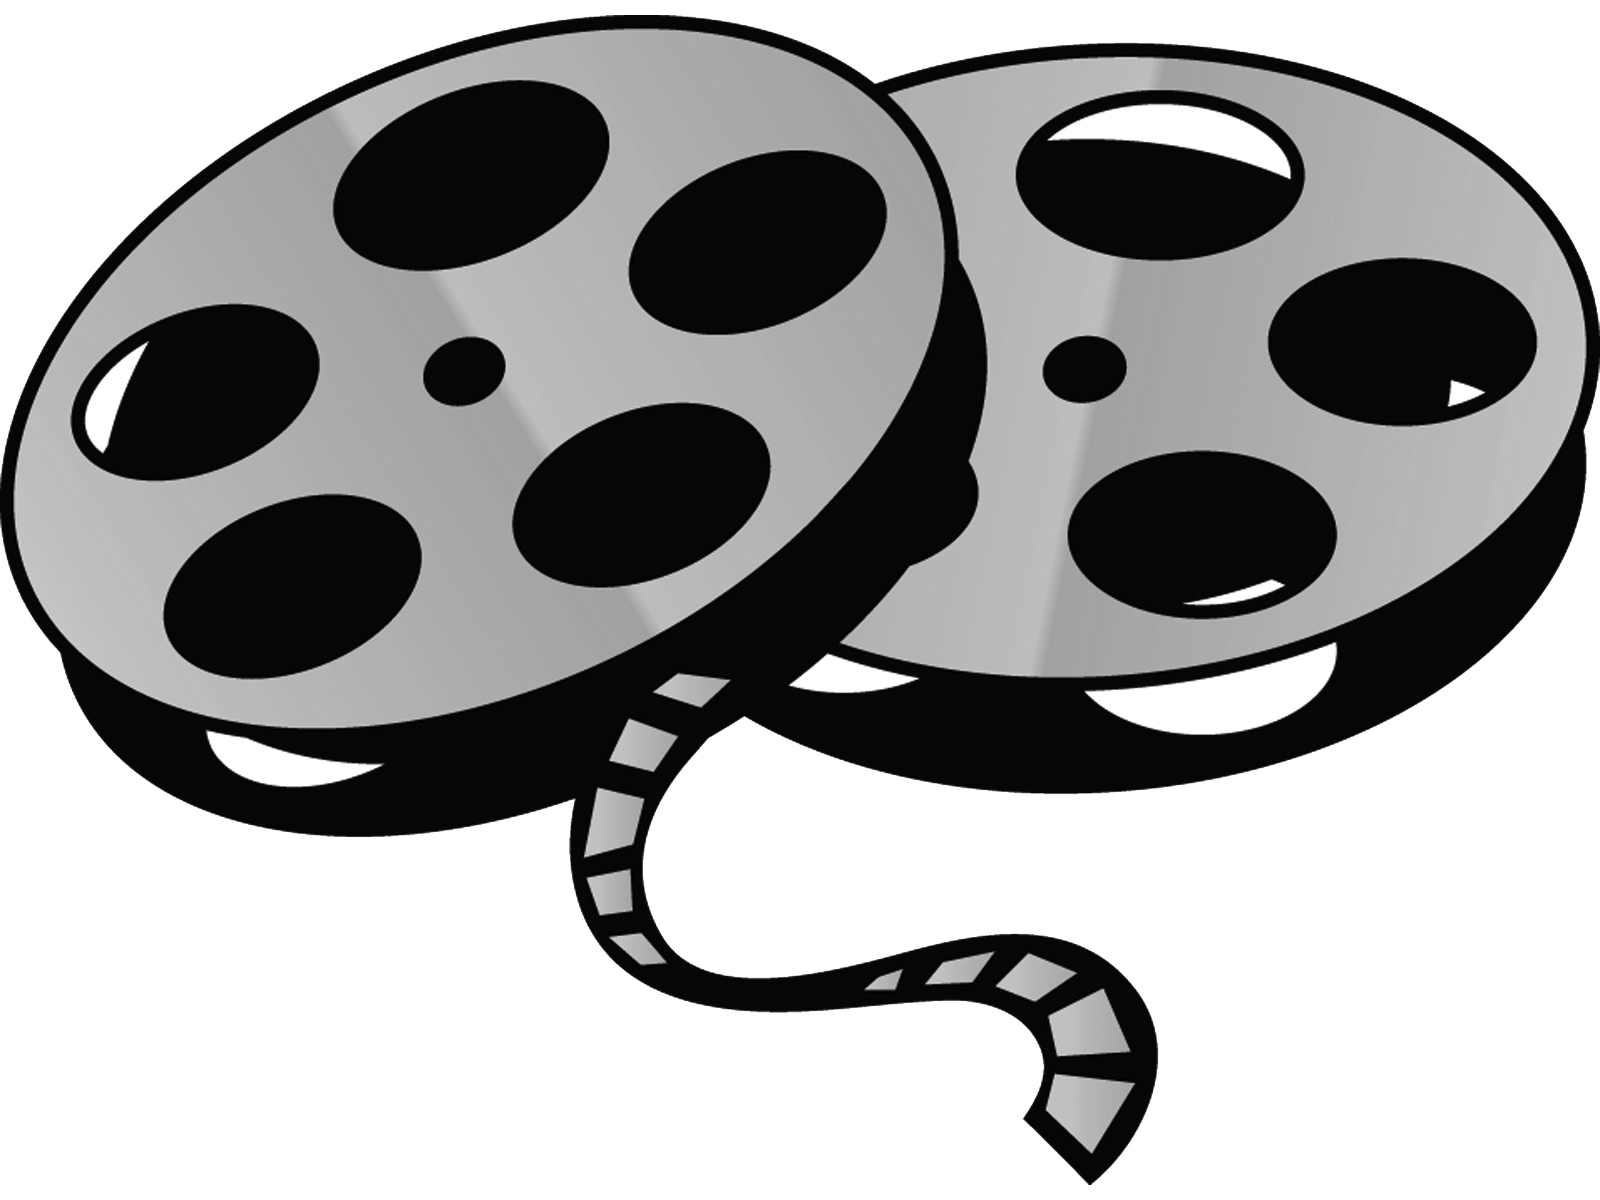 Movie reel movie film reel clip art clipart free download.